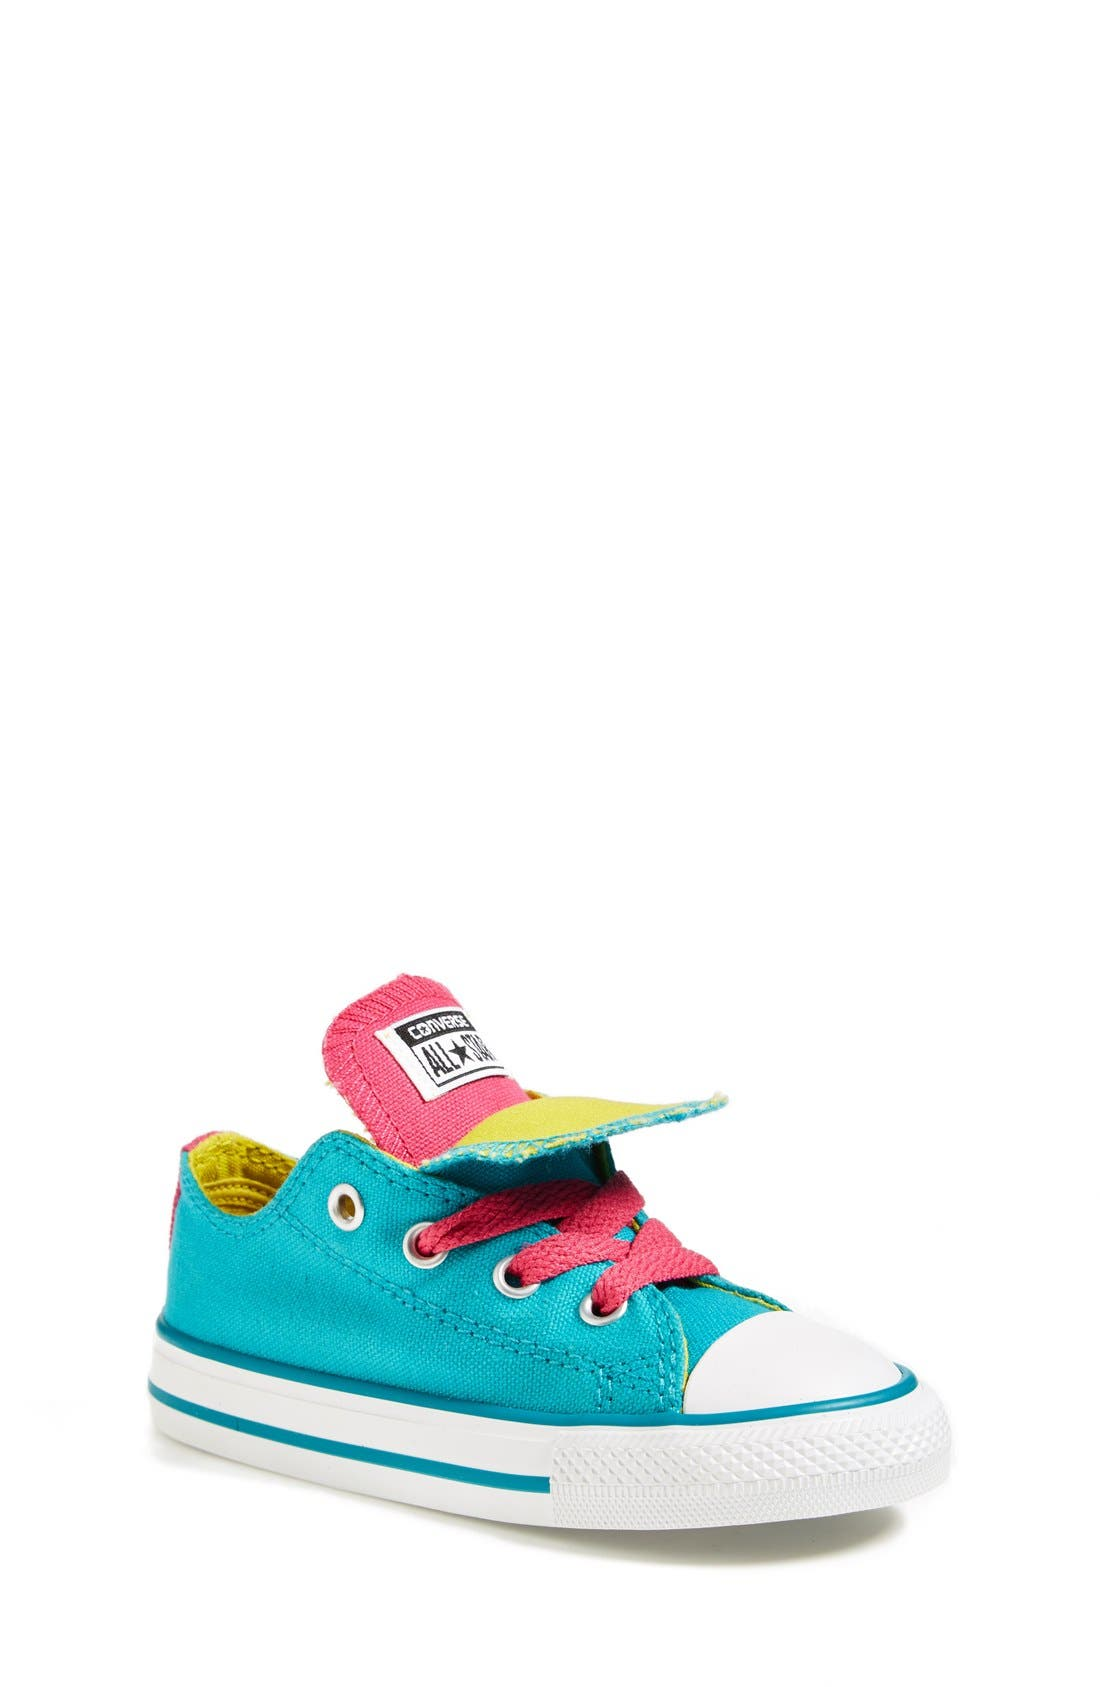 Alternate Image 1 Selected - Converse Chuck Taylor® All Star® 'Double Tongue' Sneaker (Baby, Walker, Toddler, Little Kid & Big Kid)